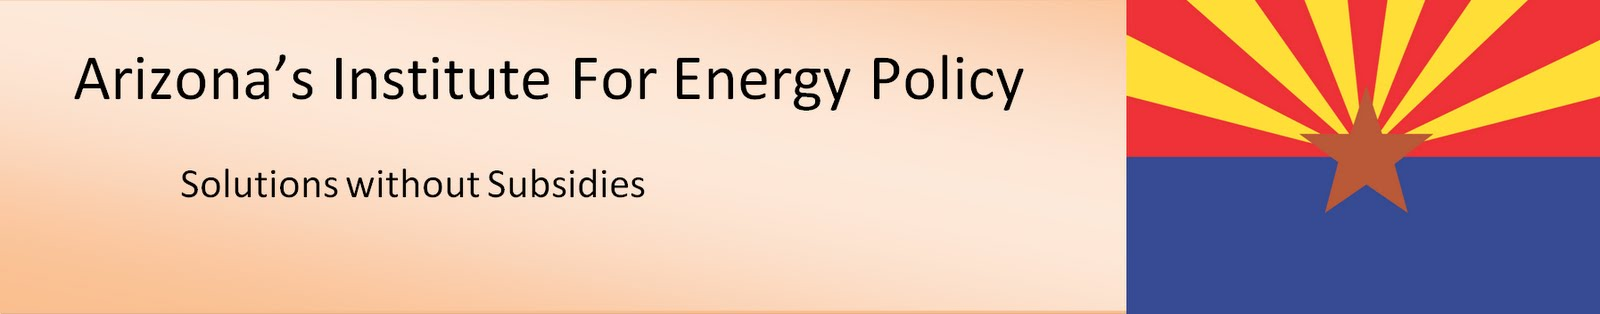 Arizona&#39;s Institute for Energy Policy - Blog